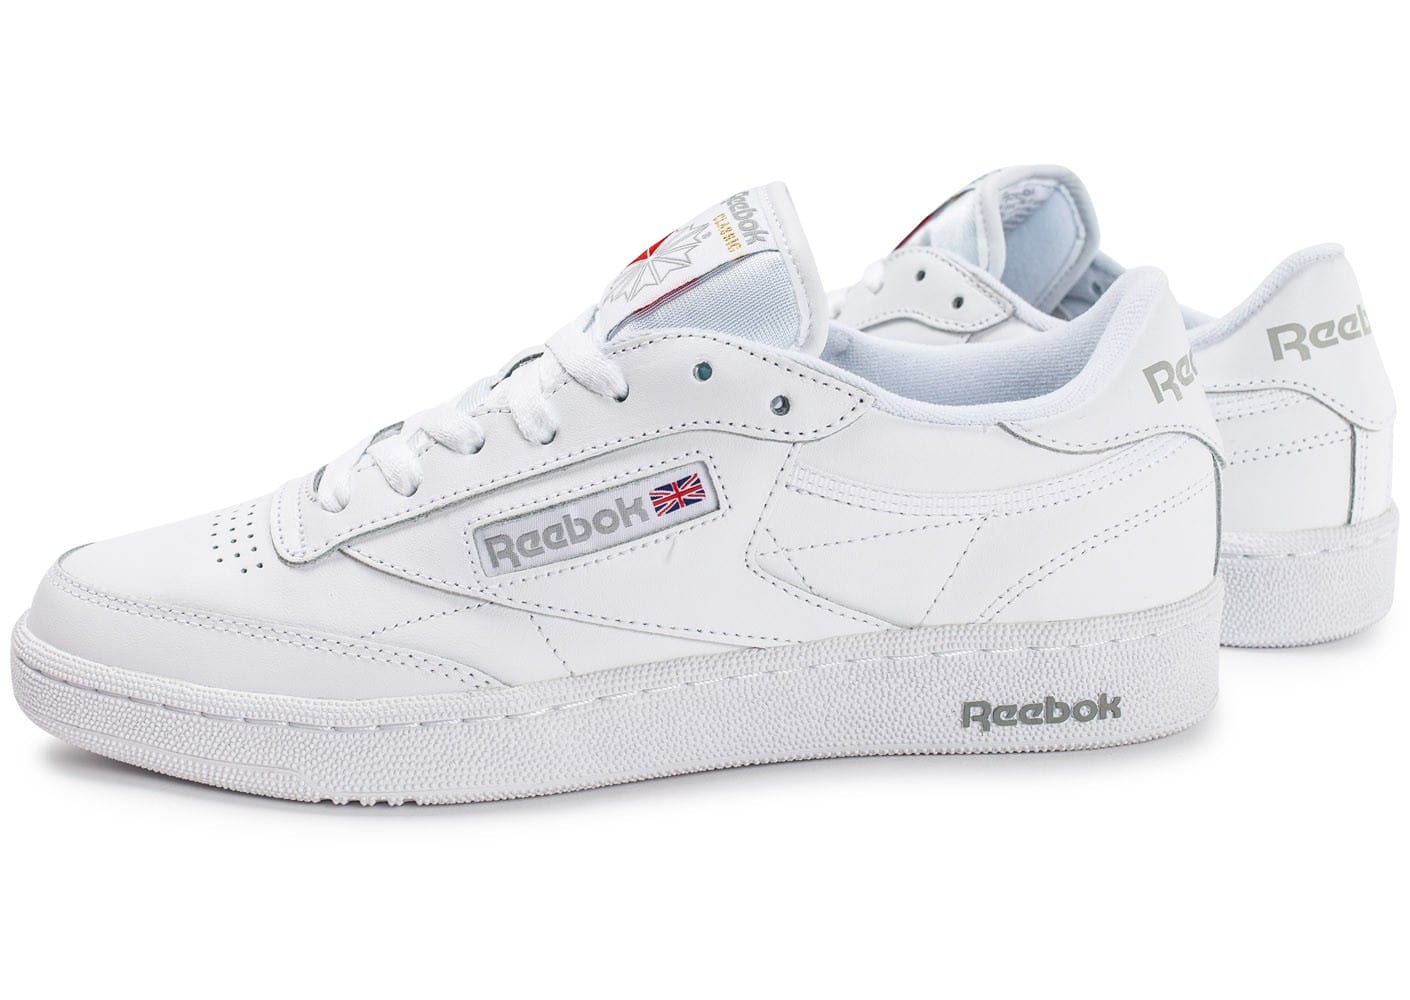 reebok club c 85 blanche chaussures homme chausport. Black Bedroom Furniture Sets. Home Design Ideas